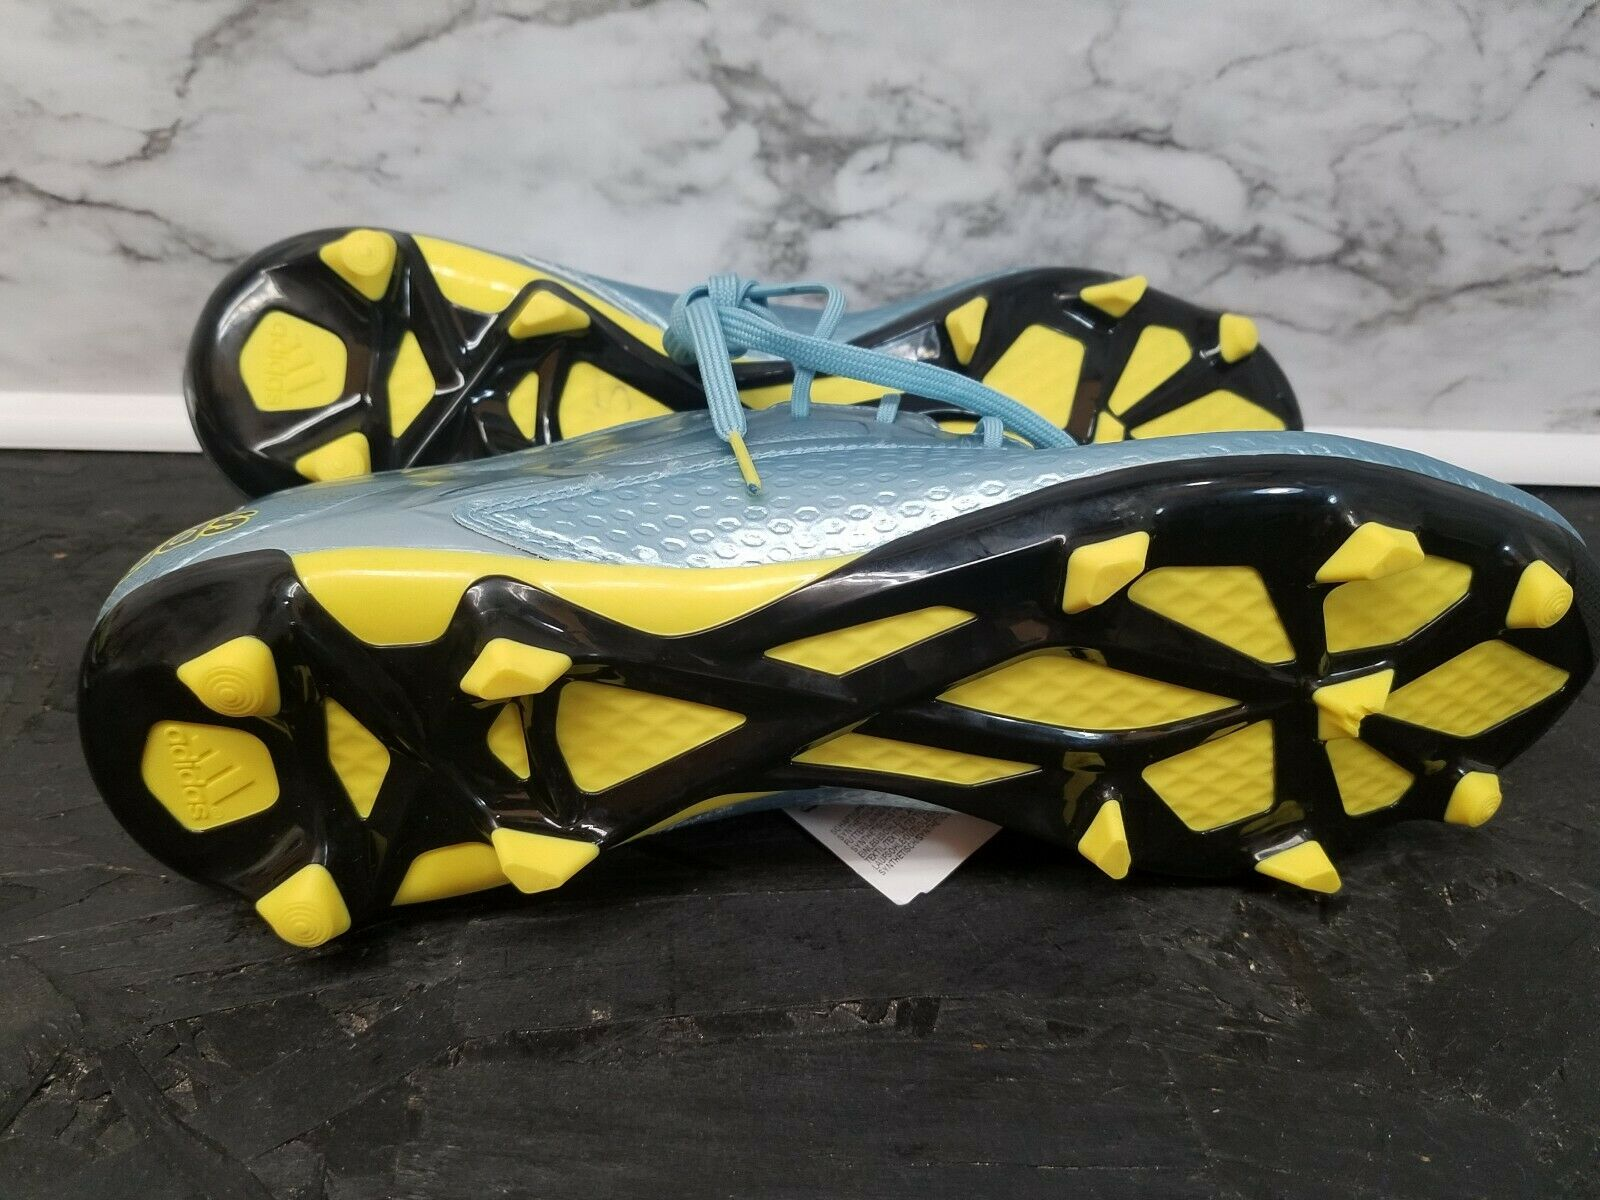 d5492a76336 ... RARE Adidas Messi 15.2 FG AG Soccer Soccer Soccer Cleats Lionel Messi  Size 12 Ice blueee ...